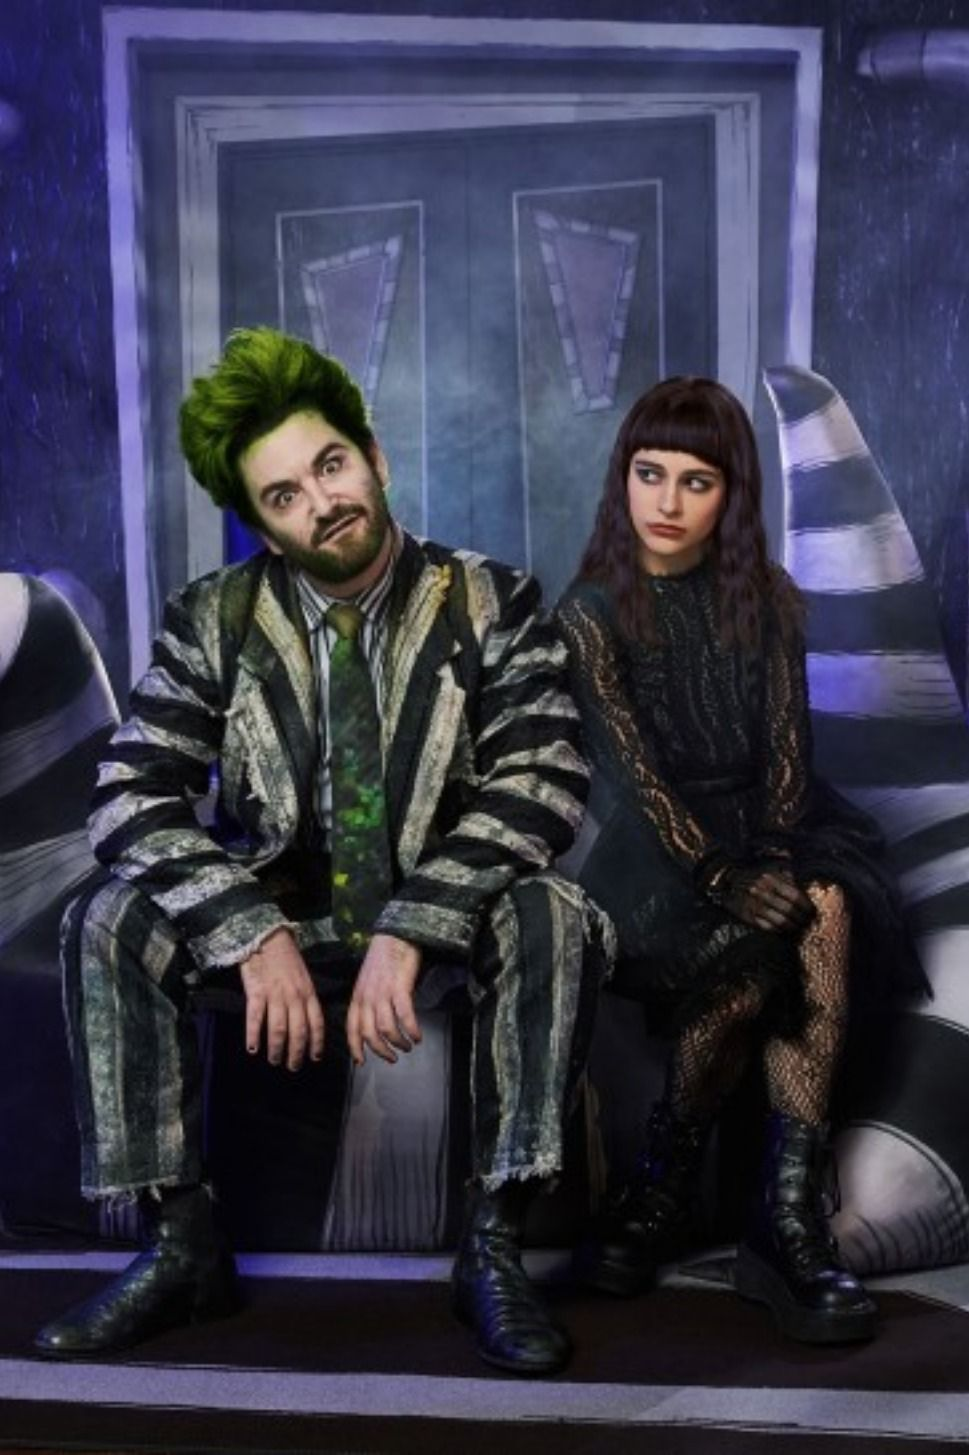 Broadway Shows: Beetlejuice or Wicked